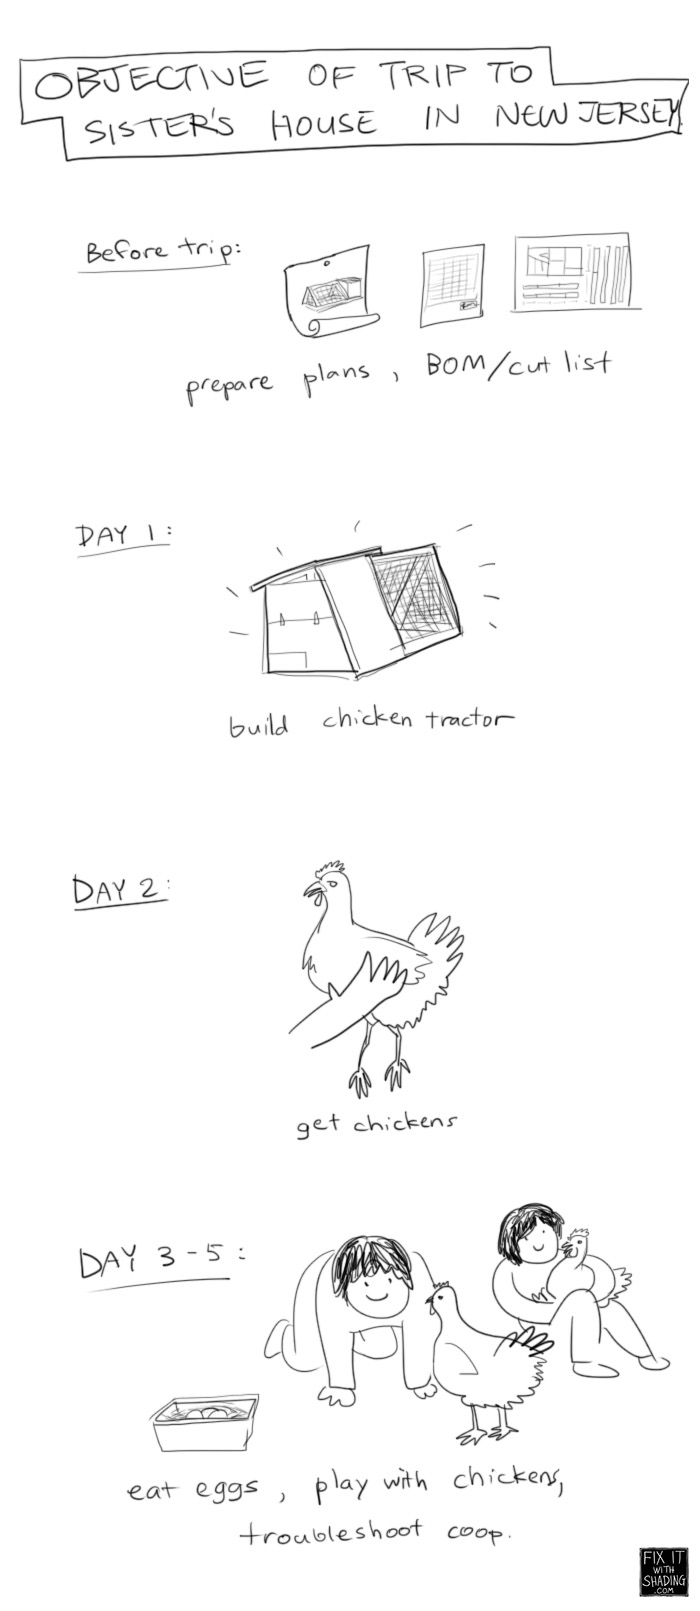 the original chicken tractor-building schedule